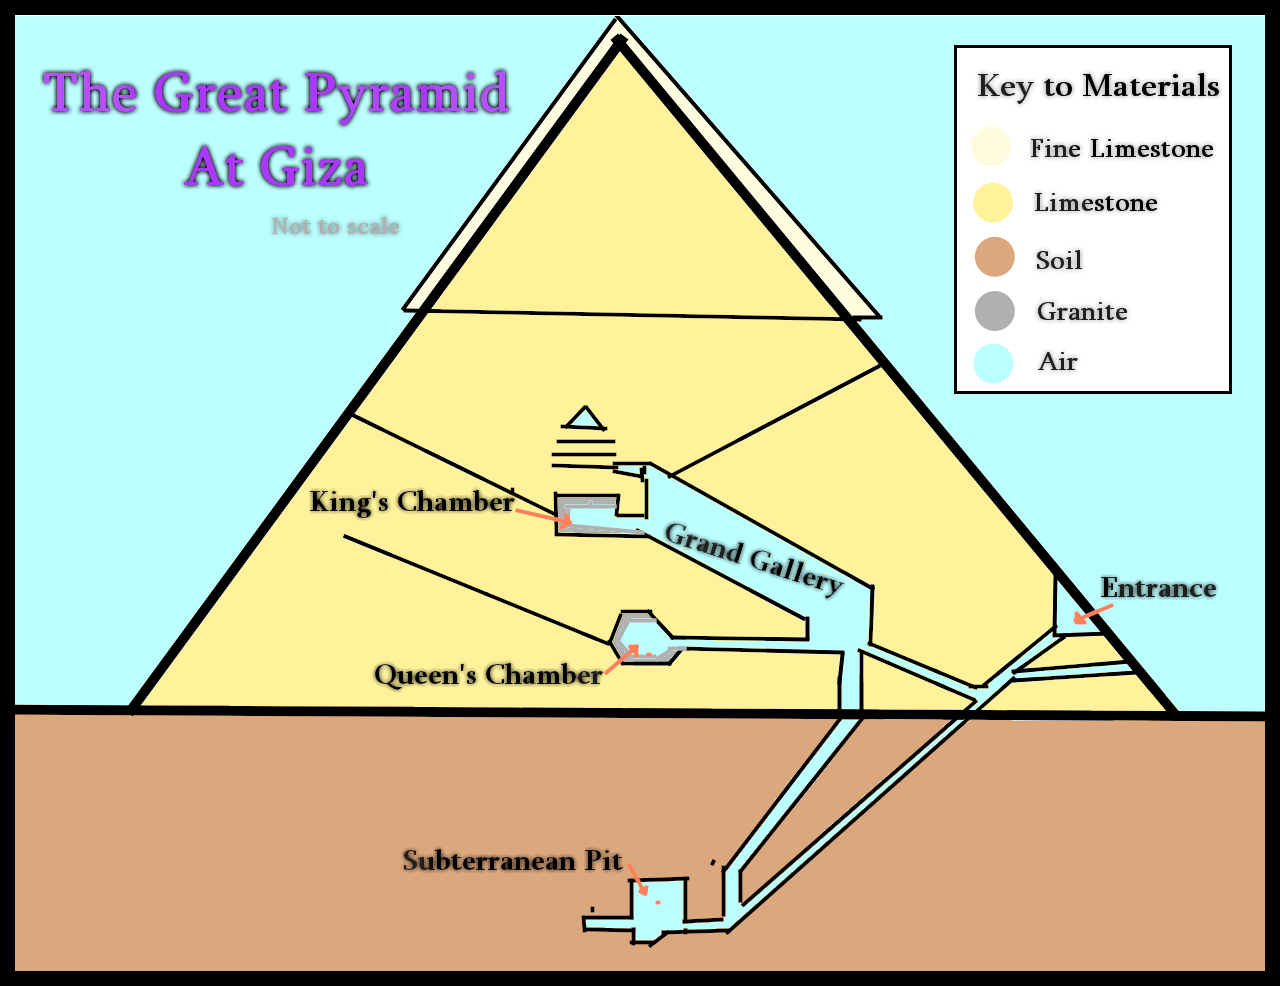 Giza Pyramid Diagram by KiraOnTheNetz on DeviantArt